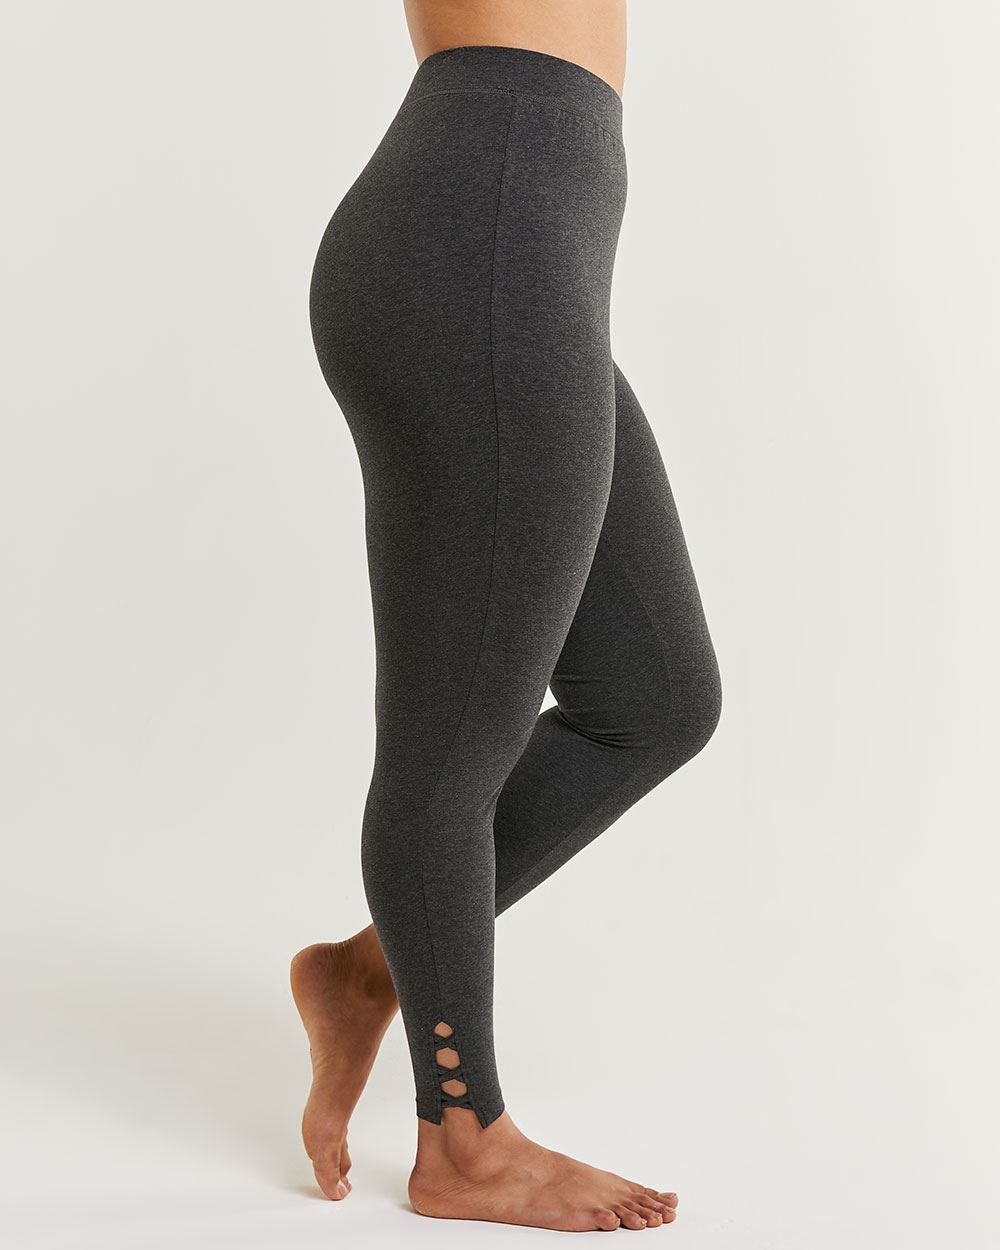 Cotton Blend Ultimate Comfort Lace-Up Leggings